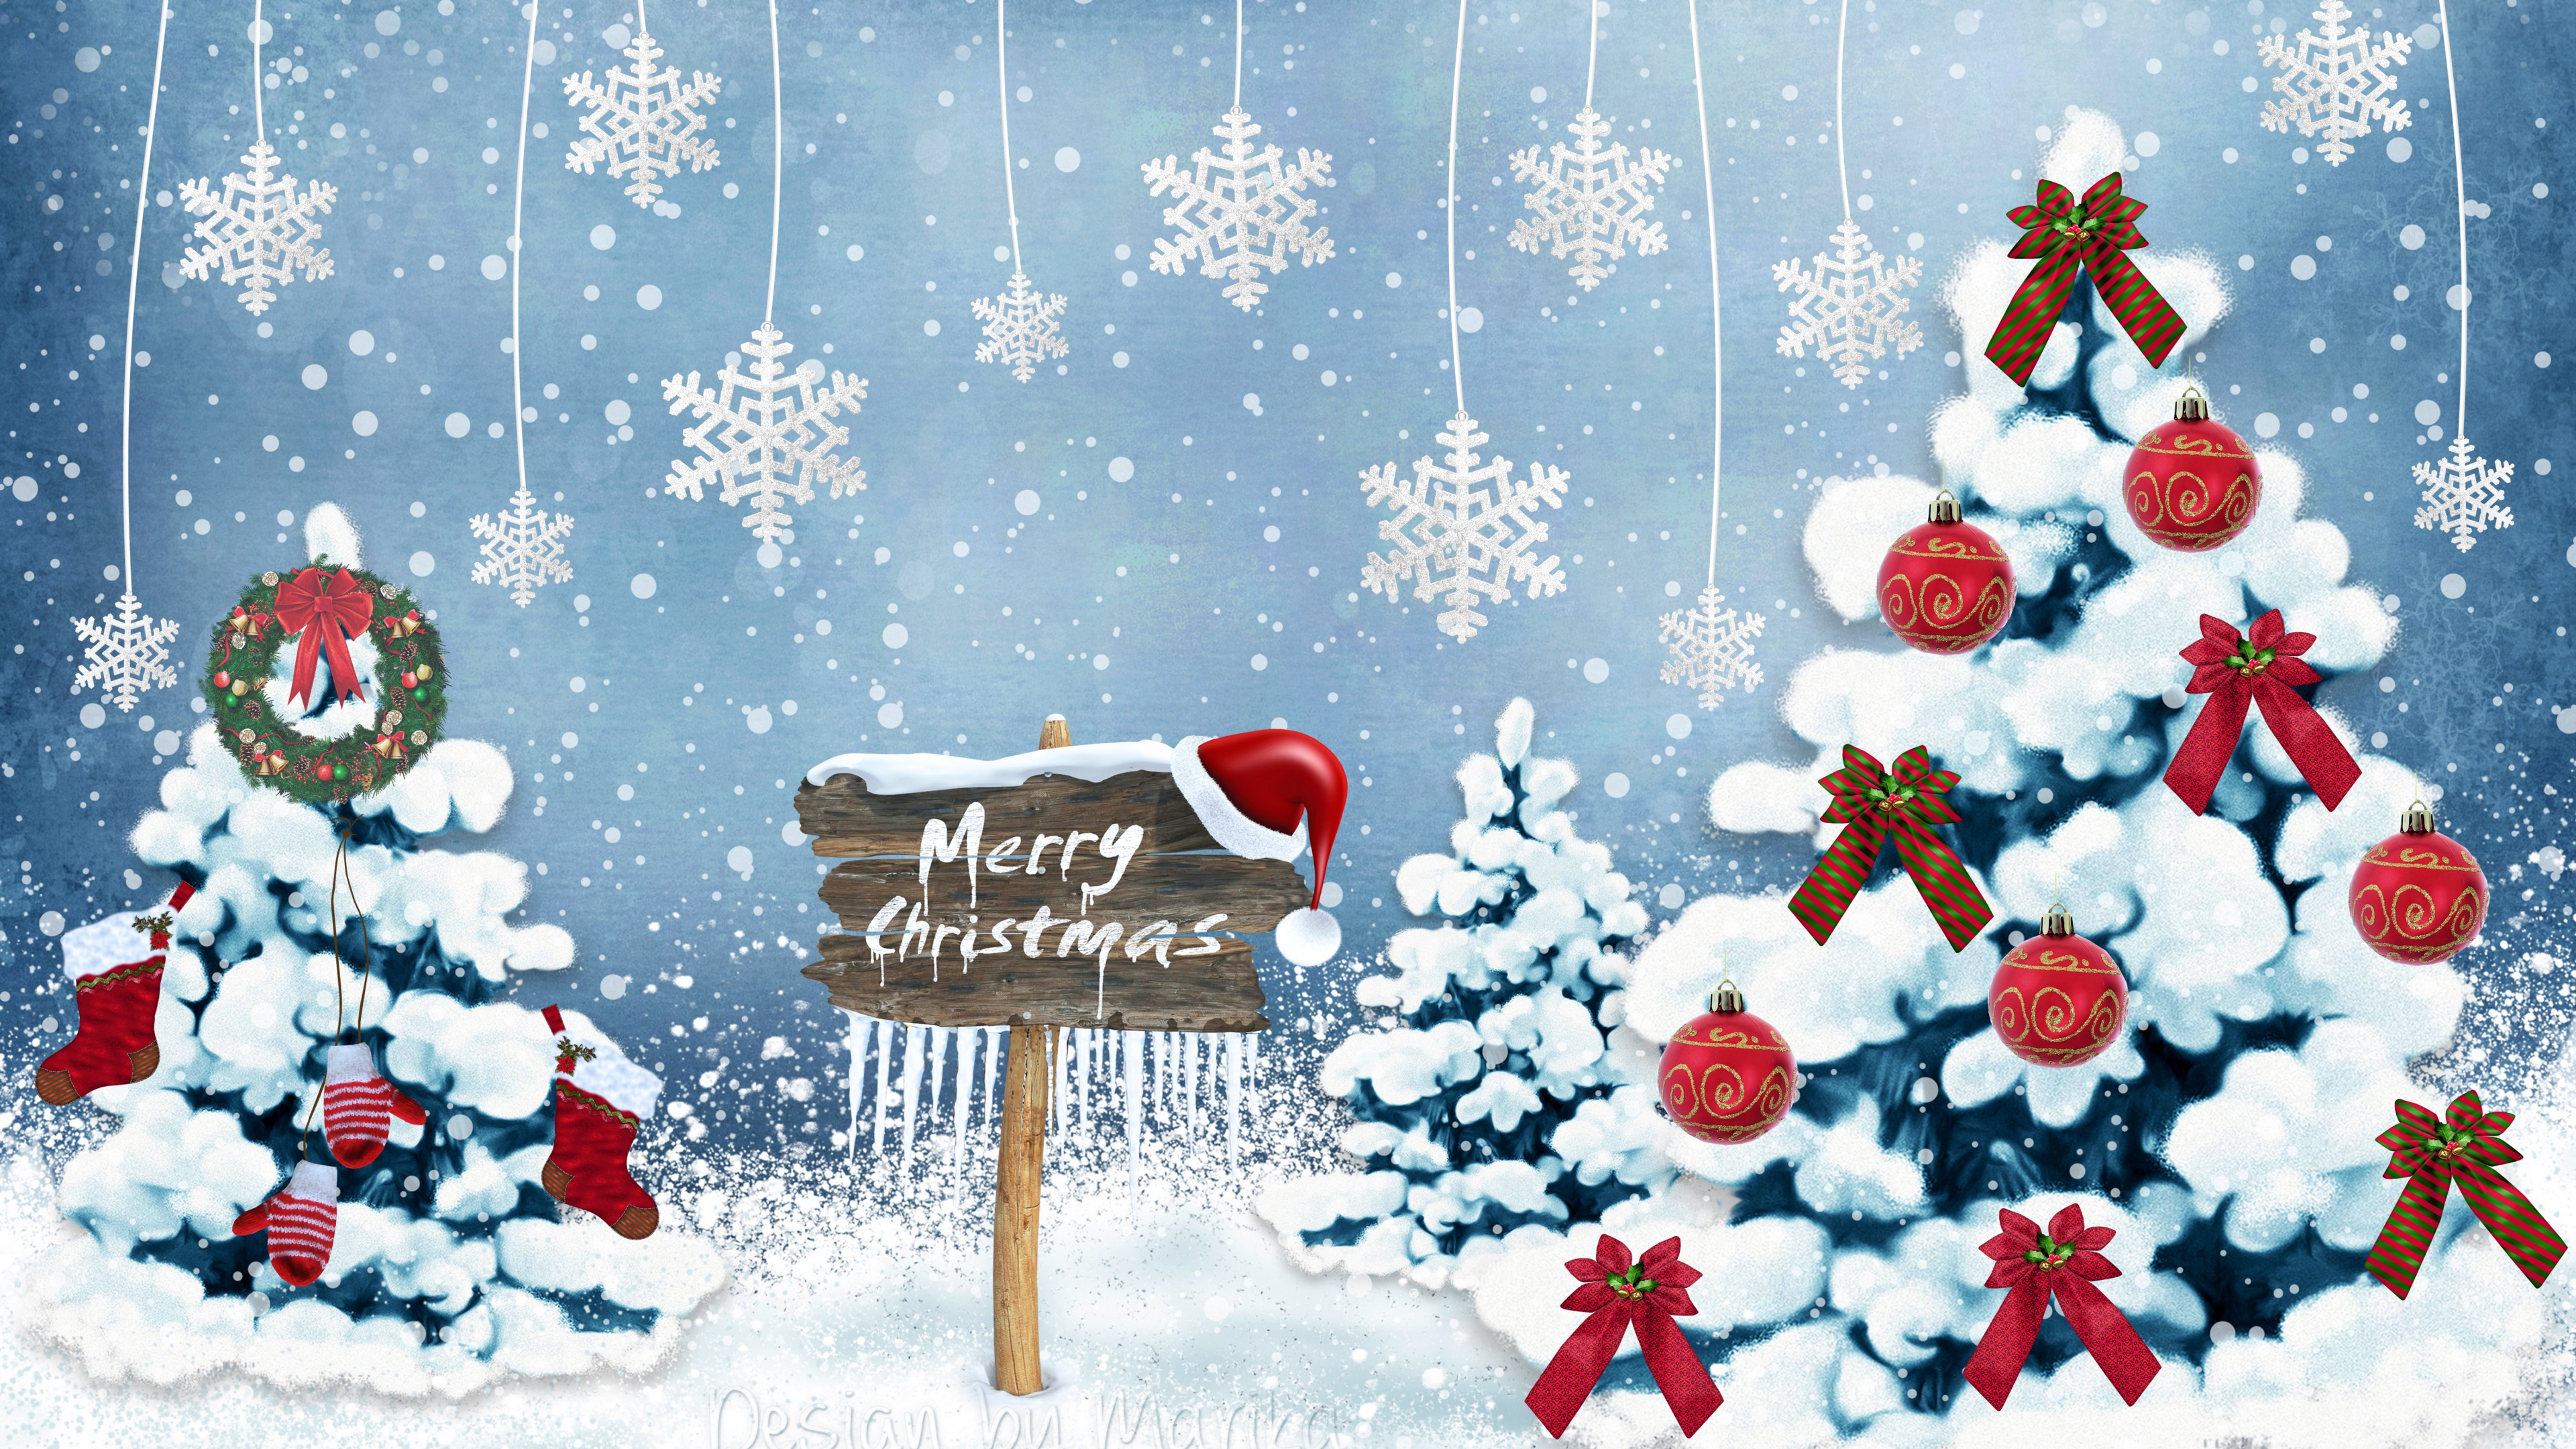 Merry Christmas Hd Wallpaper For Download   Merry Christmas 2560x1600